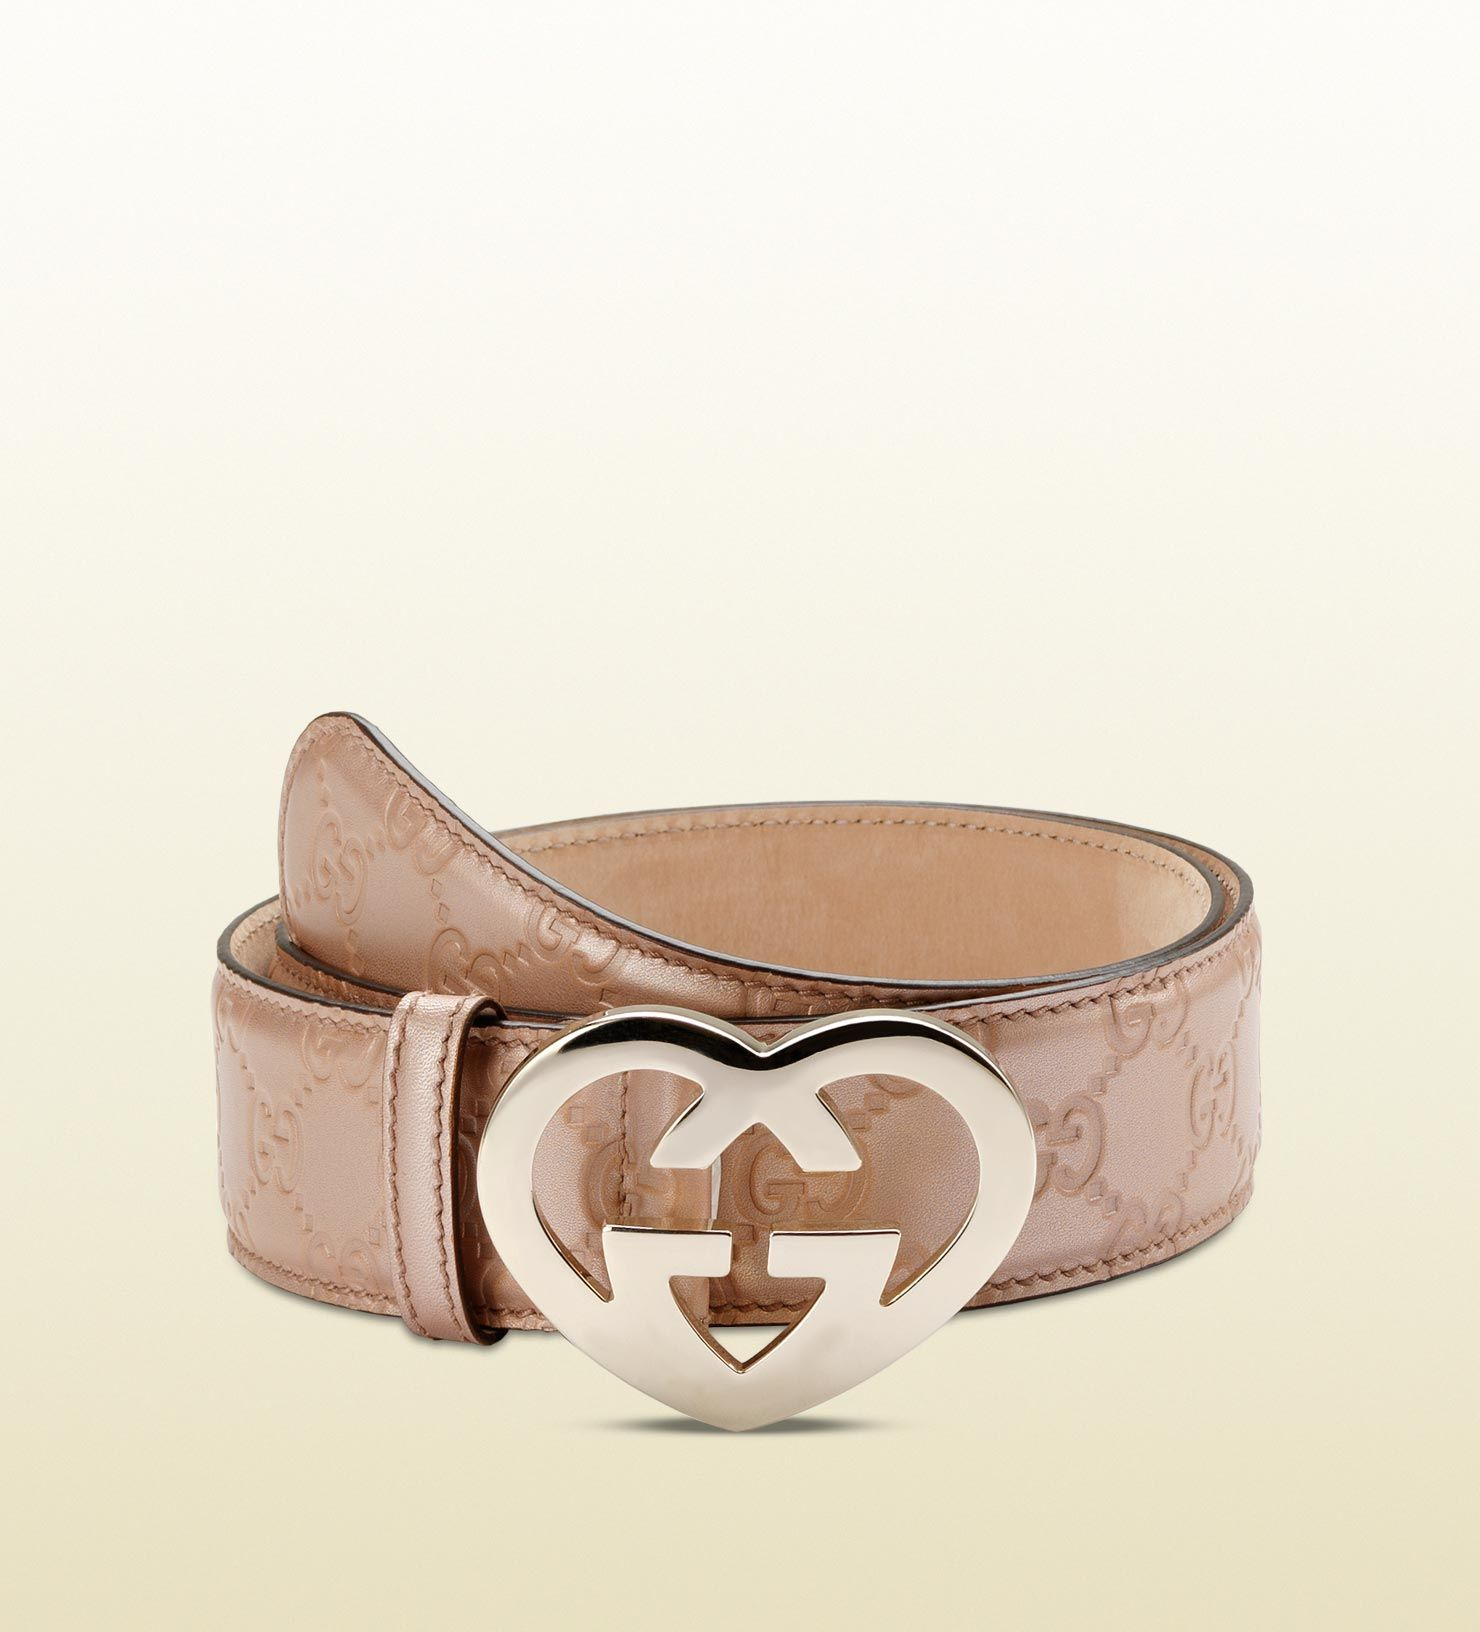 Buckle Tip Sets Tom Taylor Belts Buckles Bags Gucci Belt With Heart Shaped Interlocking G Buckle Belts Bags